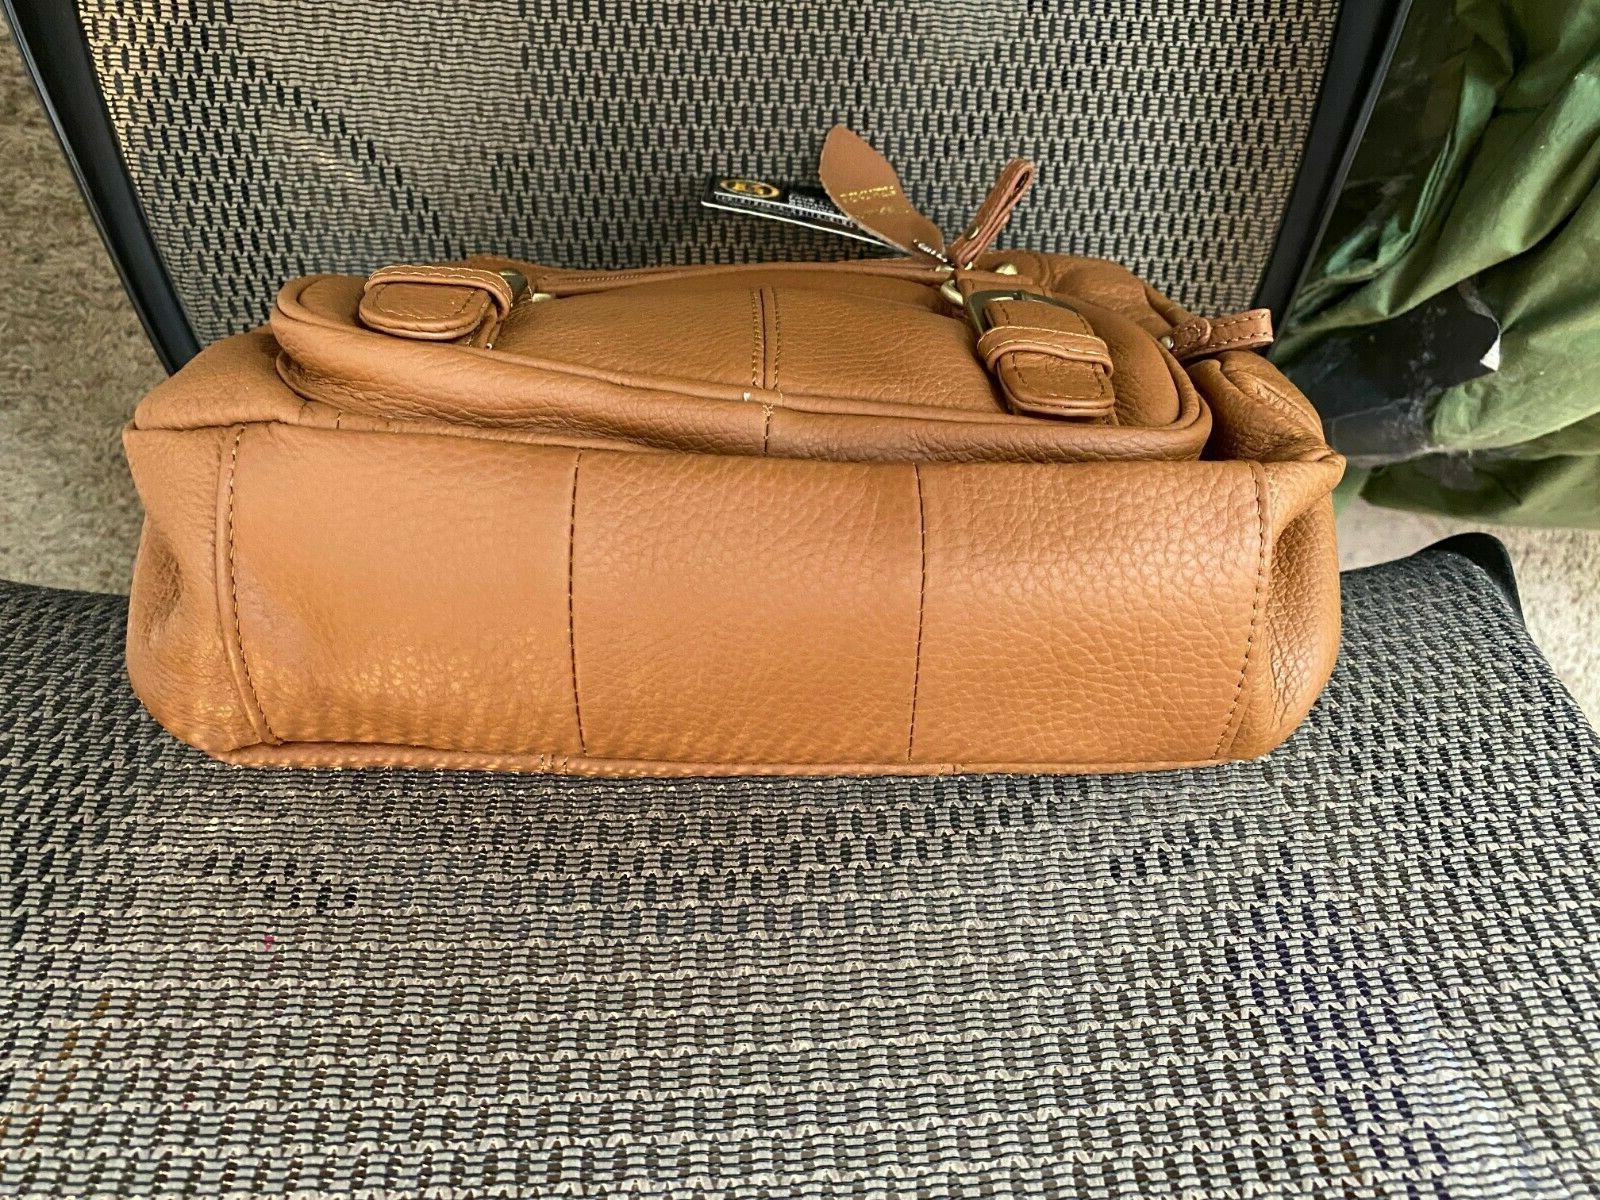 Roma Leathers #7096 or Carry